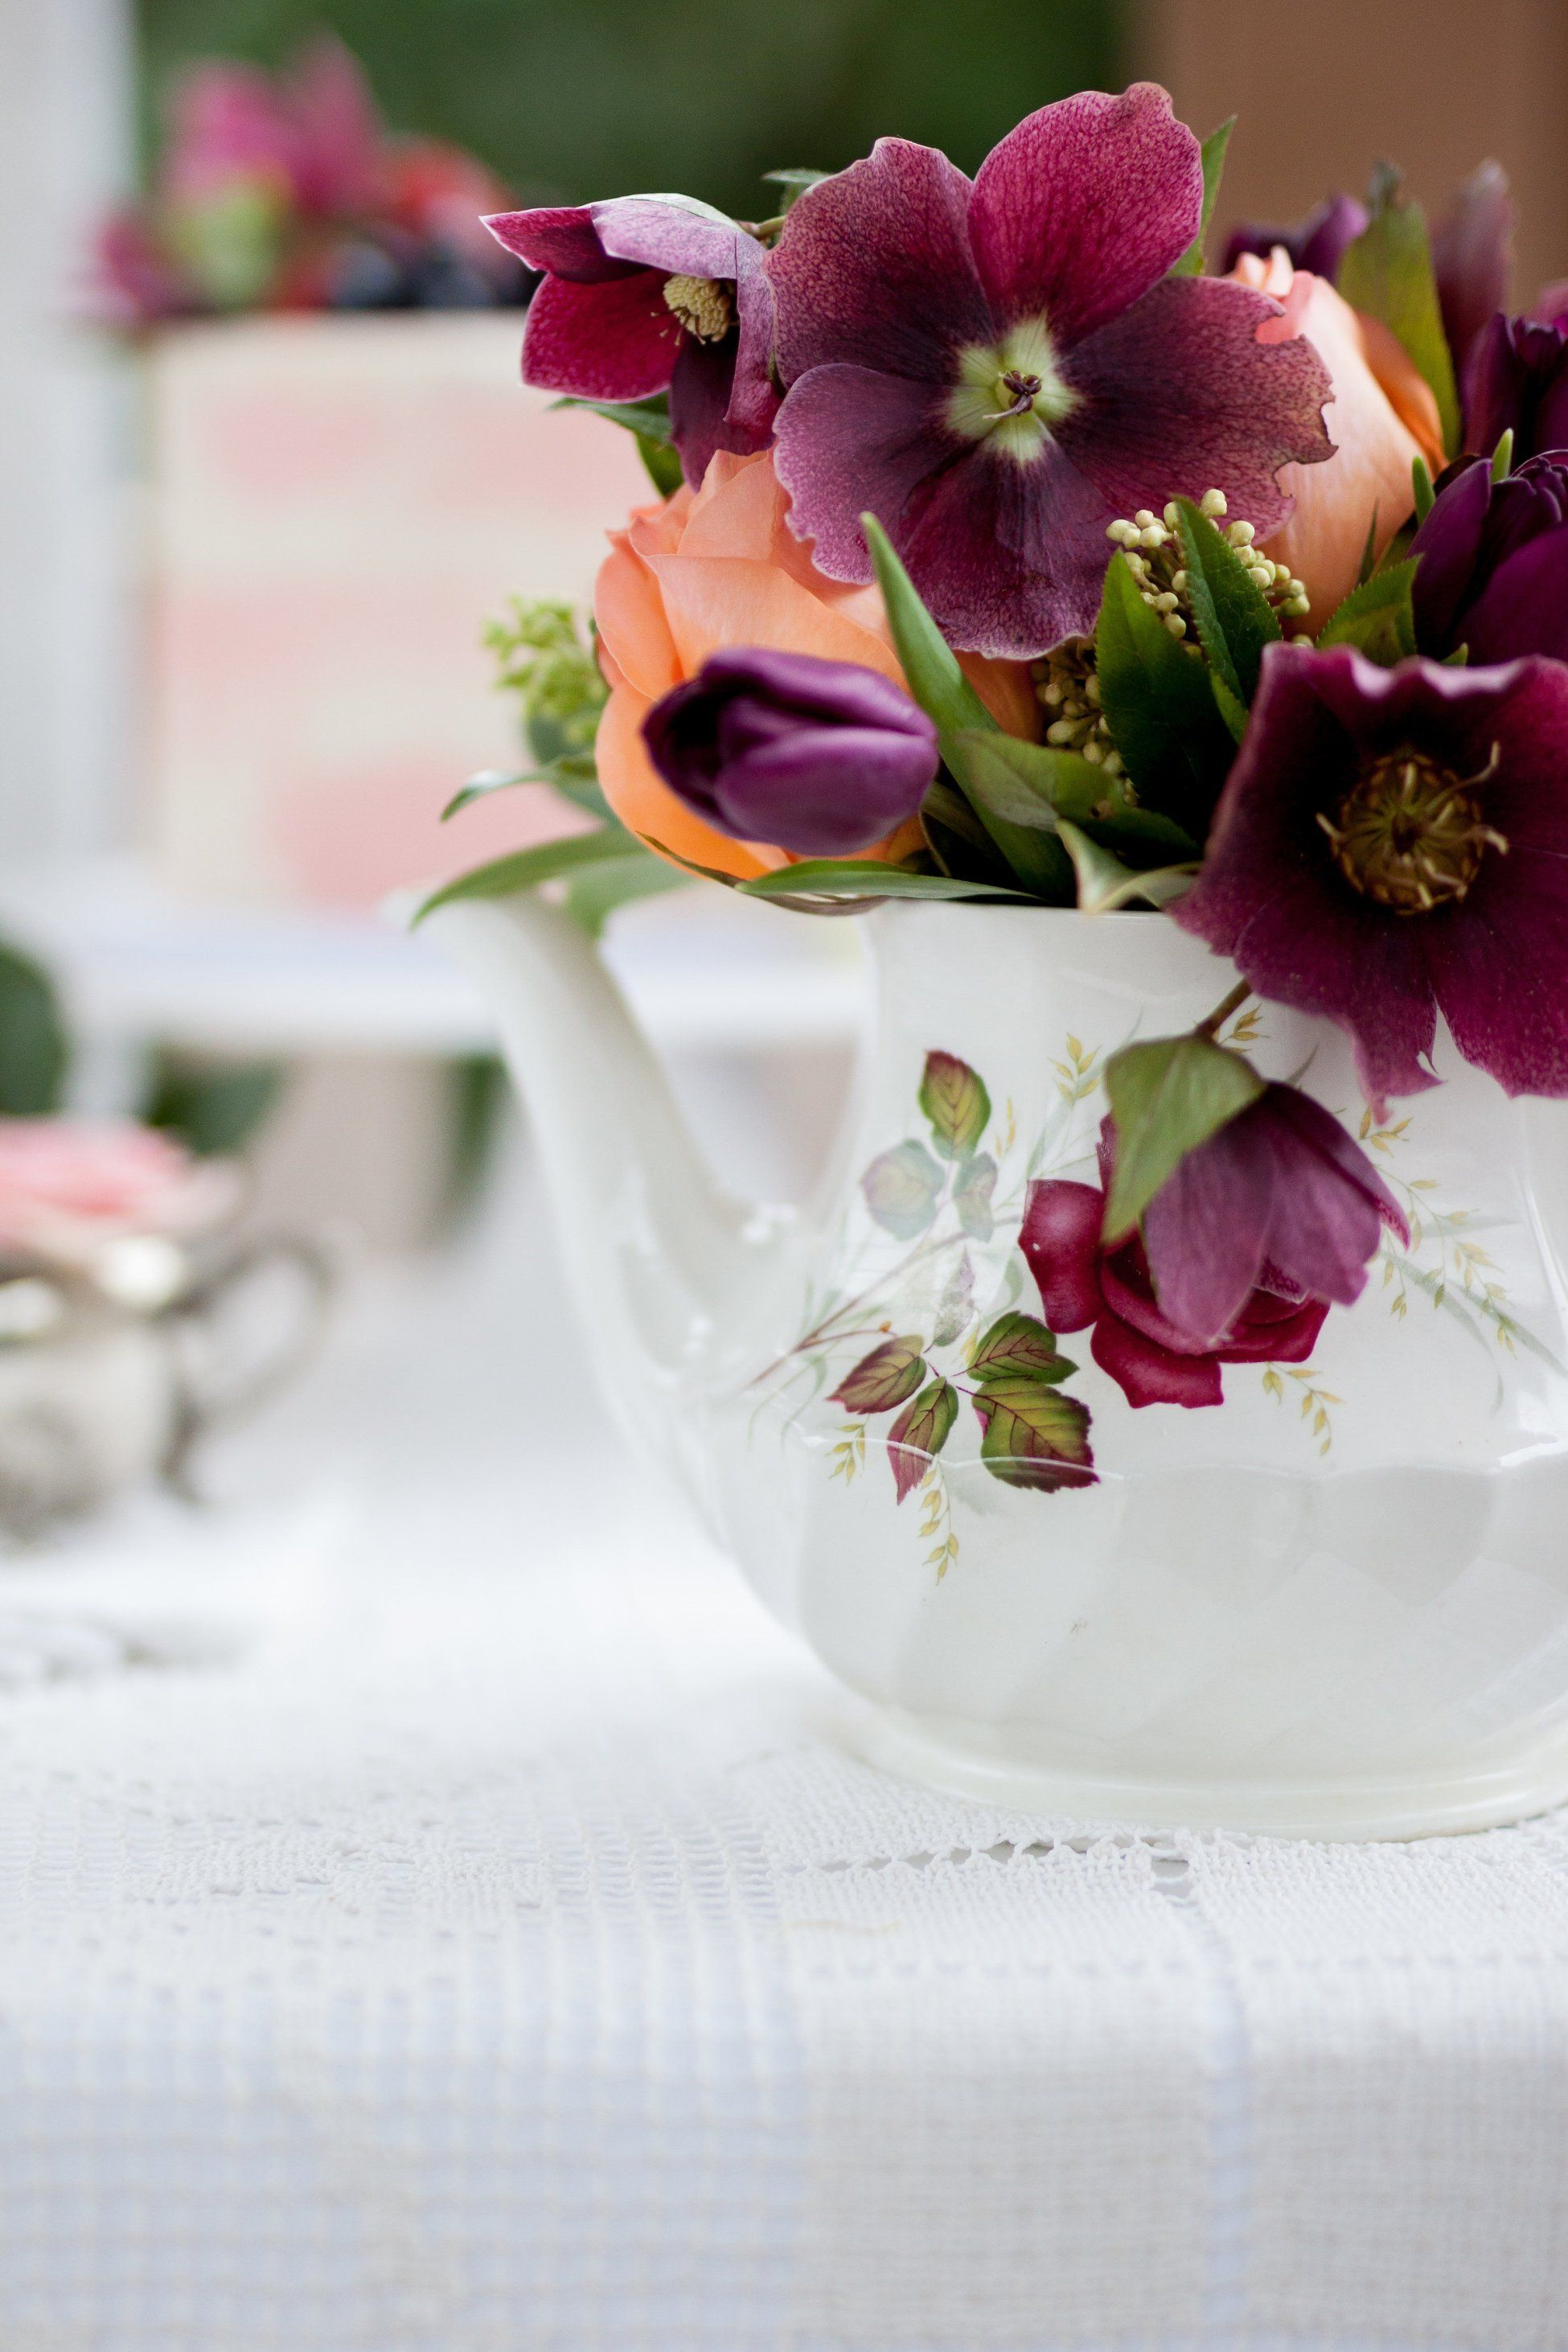 Our Happy Place - Mother\'s Day High Tea - Our Happy Place   Mother\'s ...